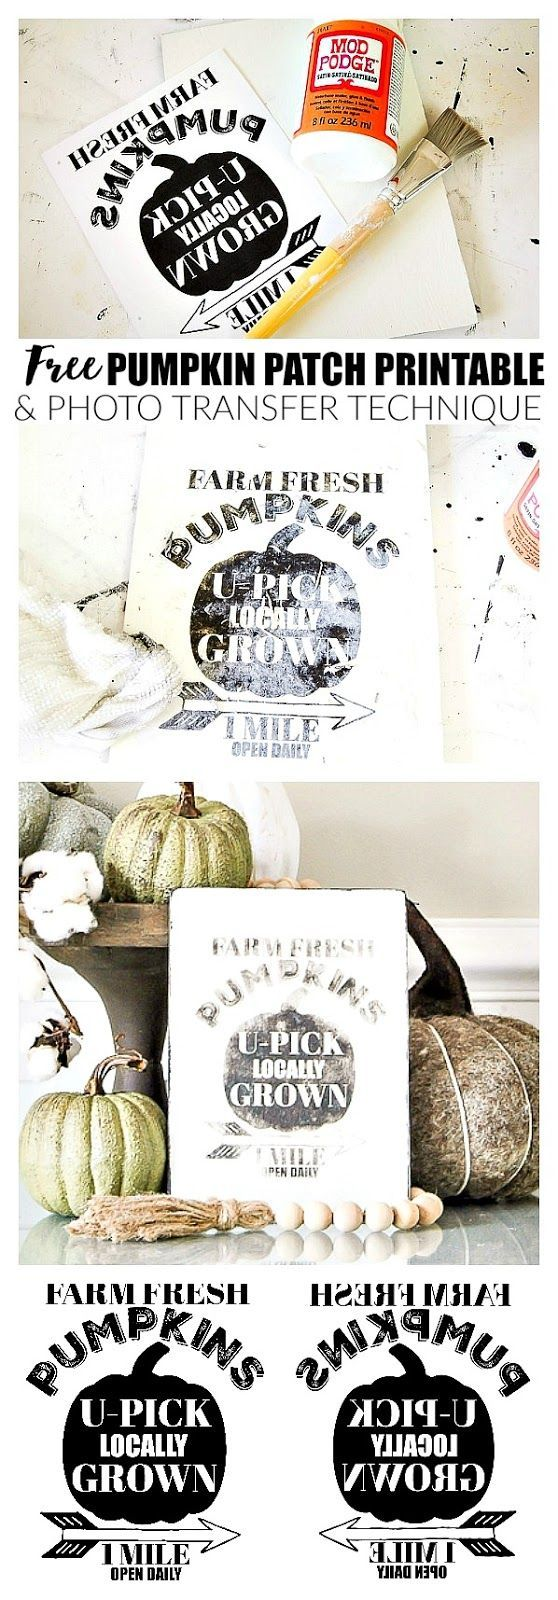 FREE PUMPKIN PATCH PRINTABLE!!!! How to transfer an image to wood with a free pumpkin printable